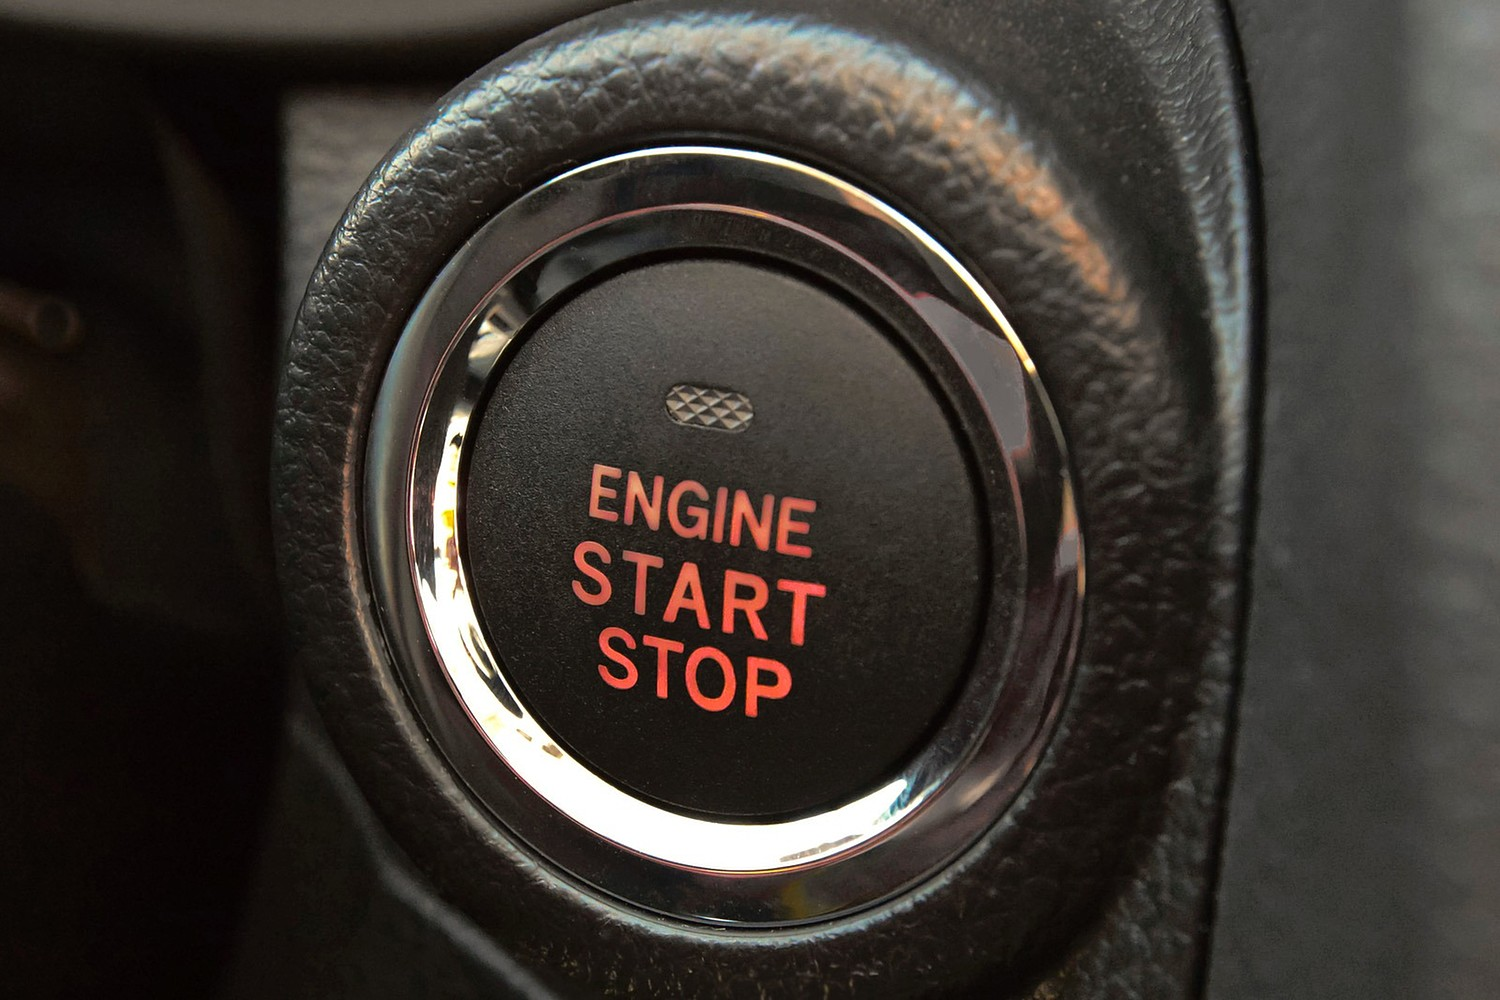 Subaru Forester 2.0XT Premium 4dr SUV Ignition Button Detail (2014 model year shown)